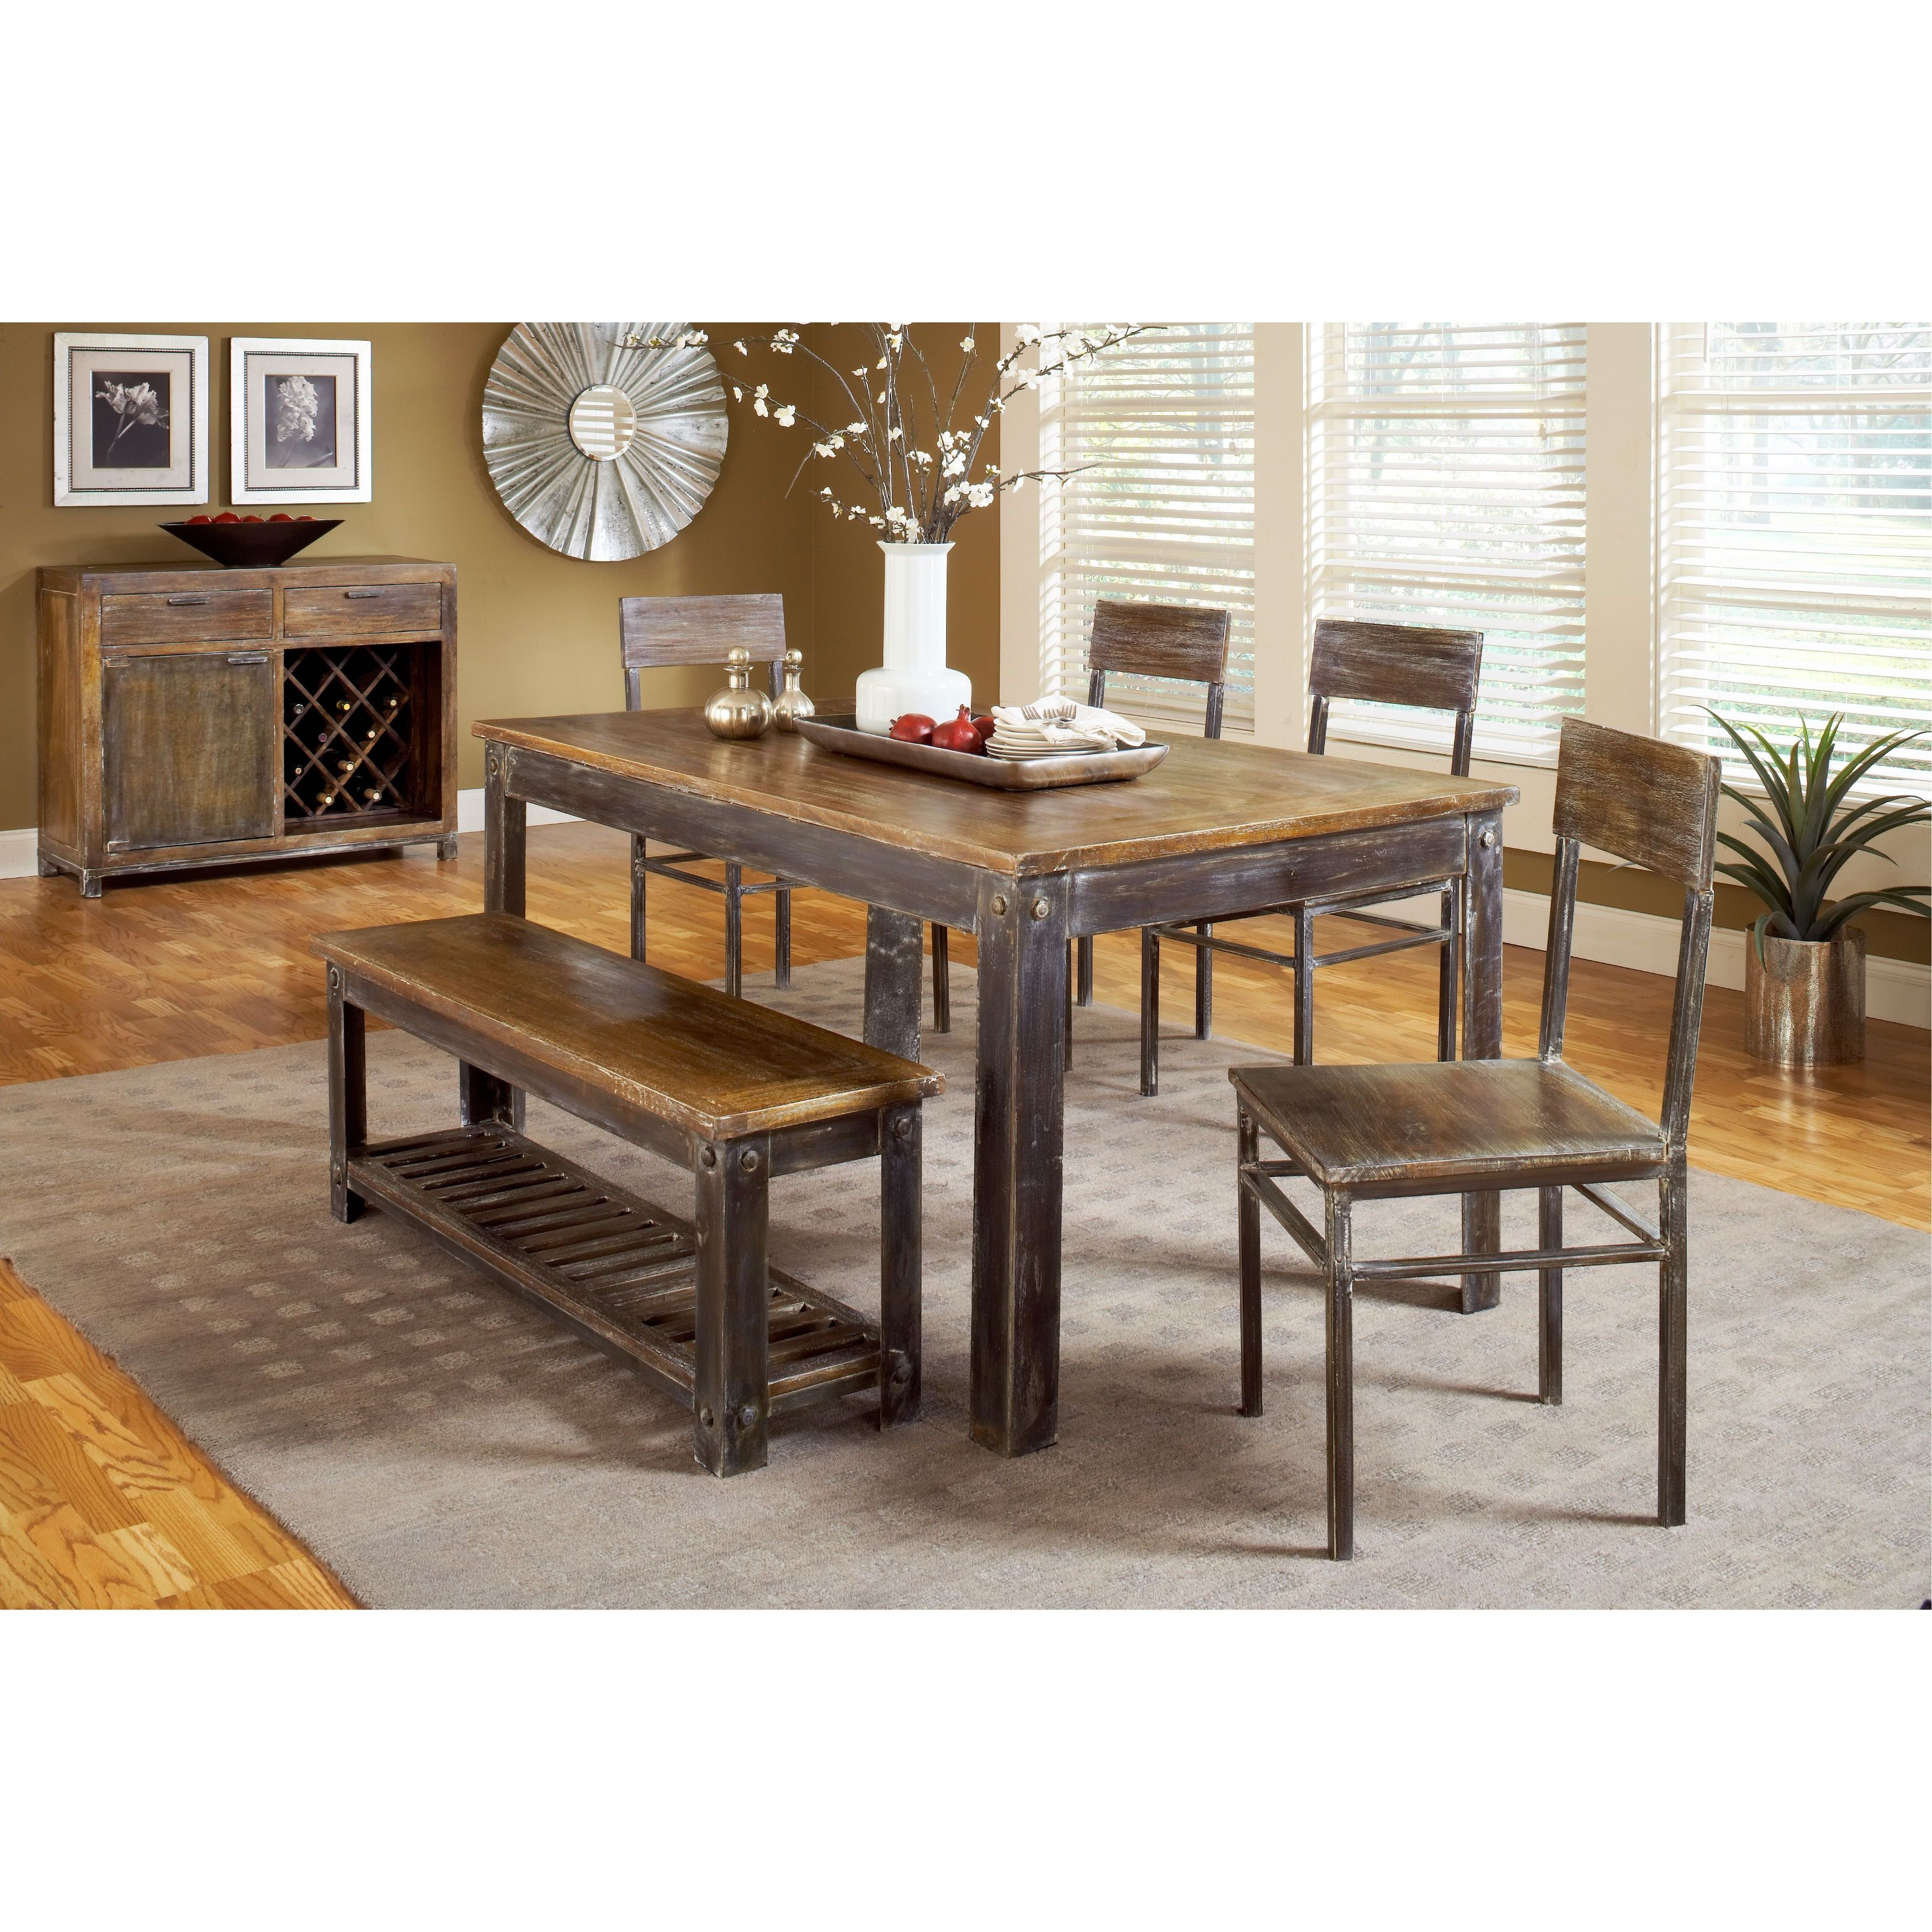 Classic Rustic Mango Wood Dining Table Overstock 10626386